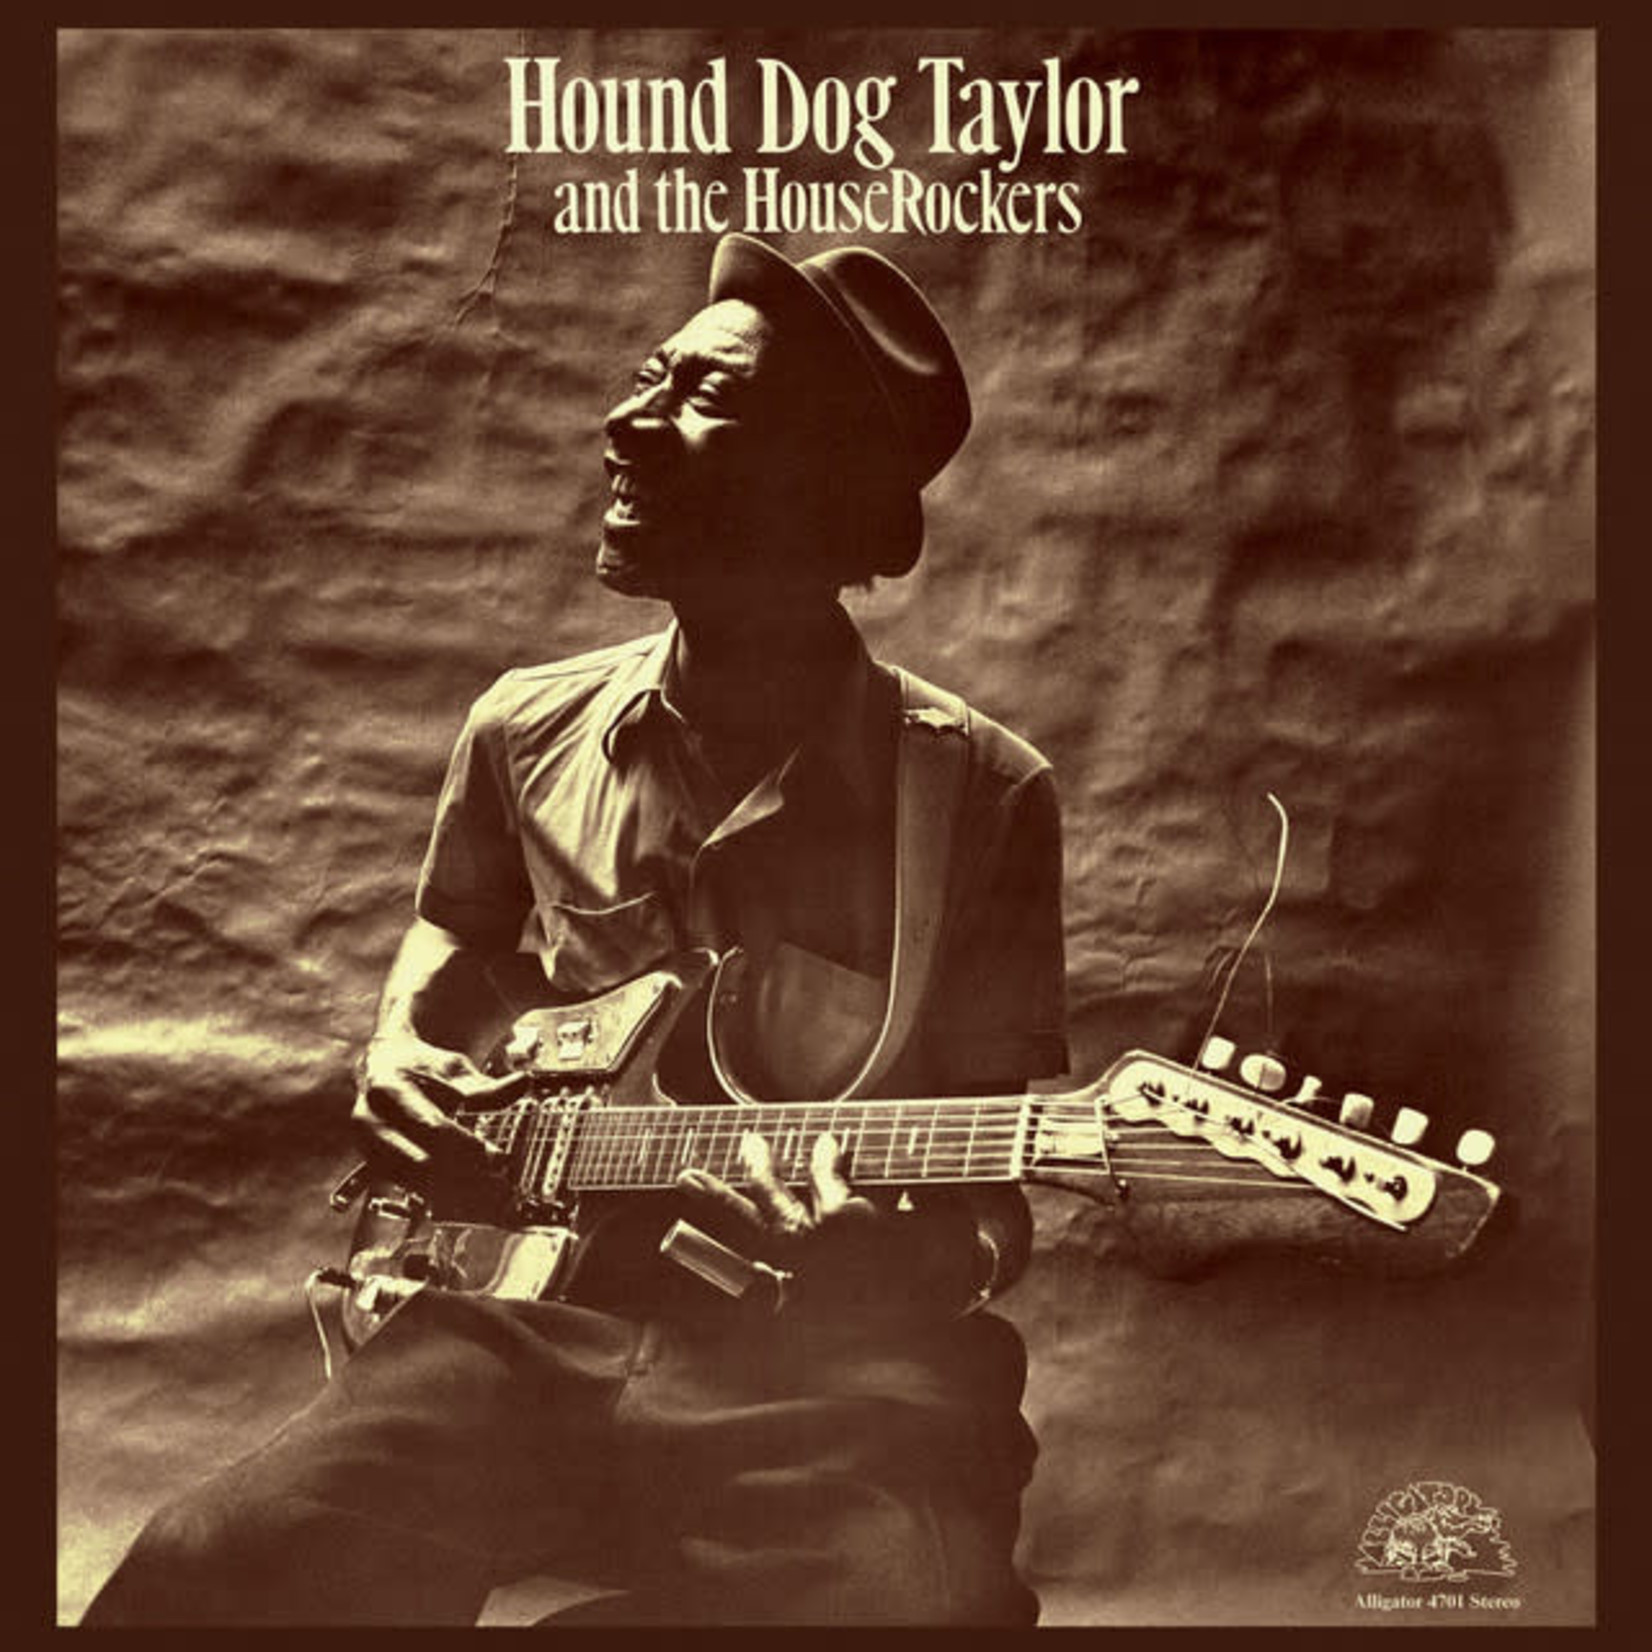 Vinyl Hound Dog Taylor and the HouseRockers - S/T